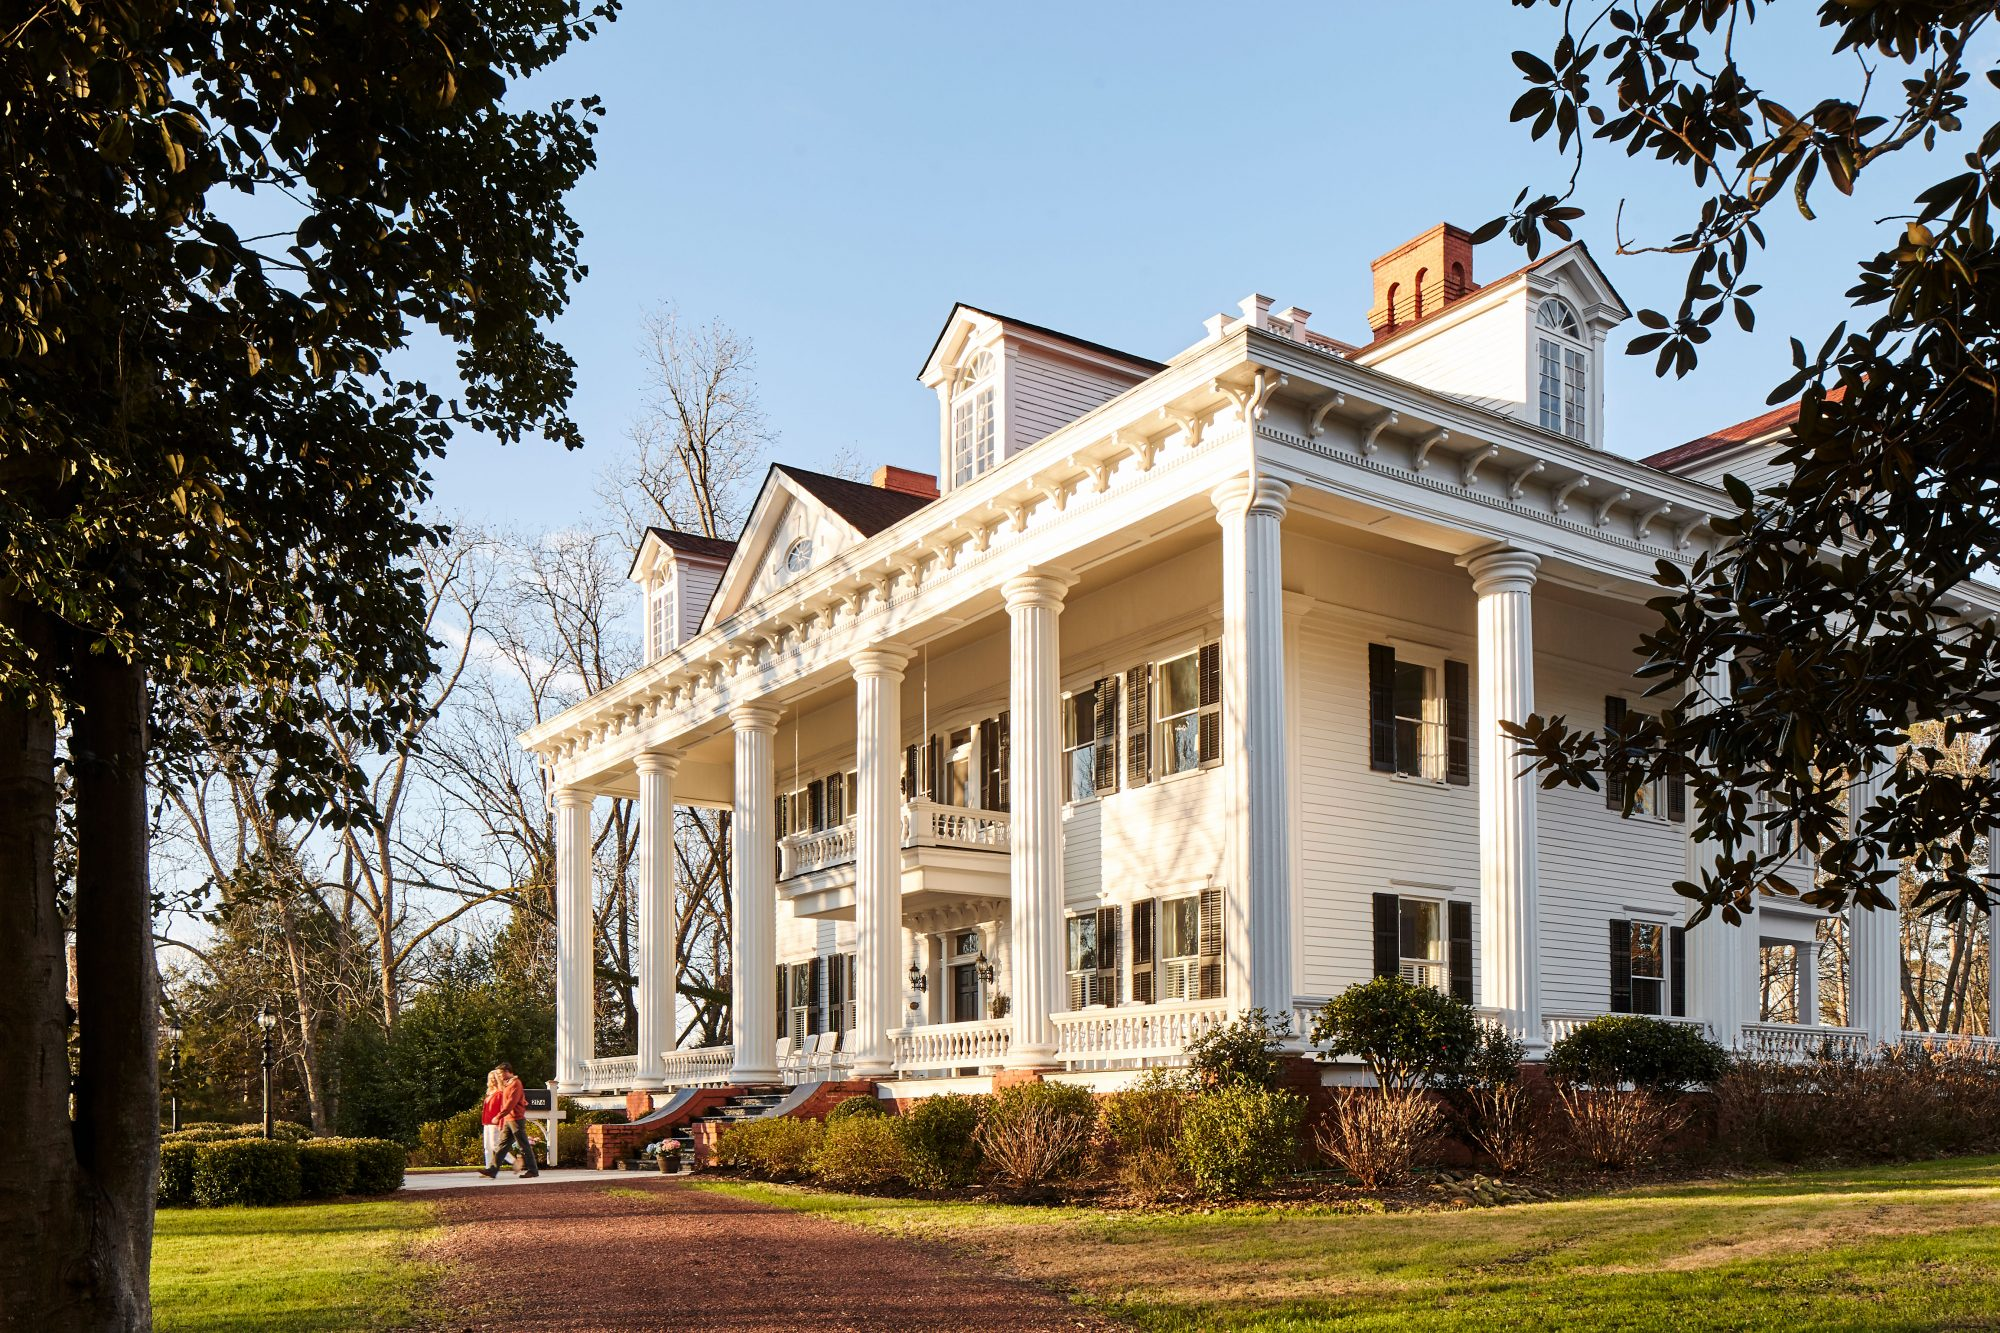 Twelve Oaks Inn in Covington, GA Inspiration for Gone with the Wind